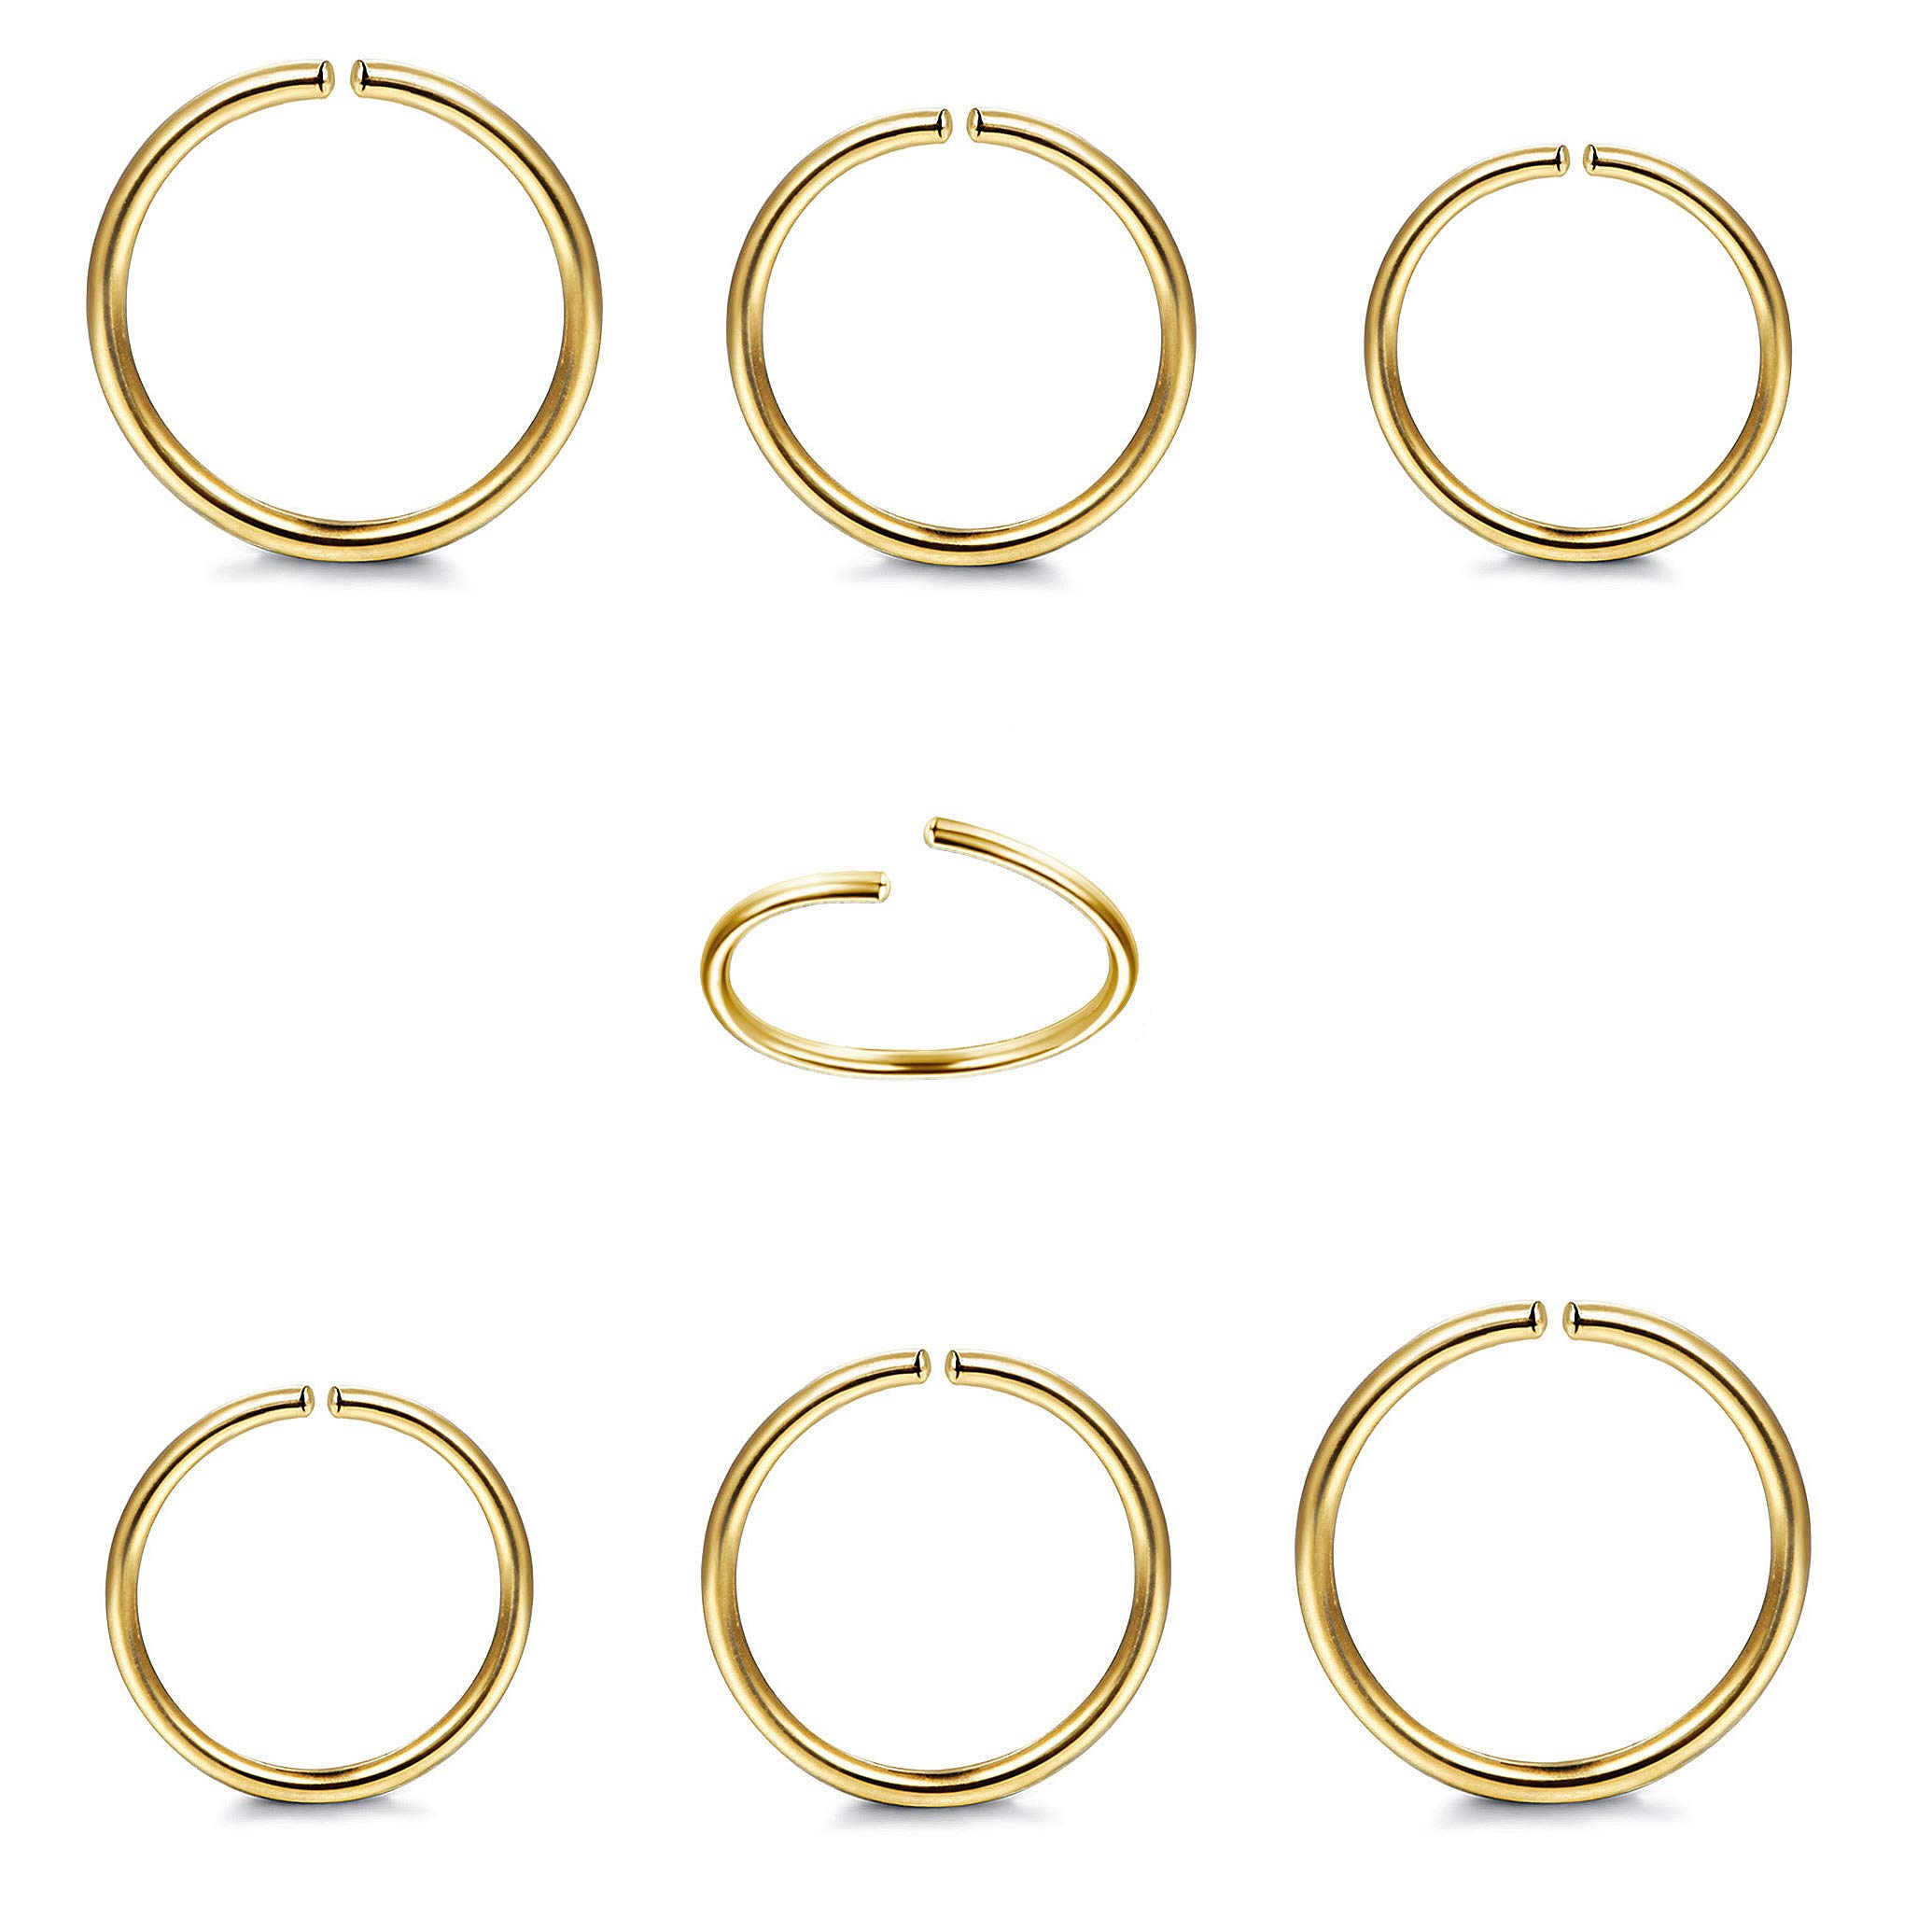 Milacolato 6Pcs 20G Sterling Silver Nose Rings Hoop Helix Cartilage Tragus Earrings Fake Lip Septum Ring for Men Women